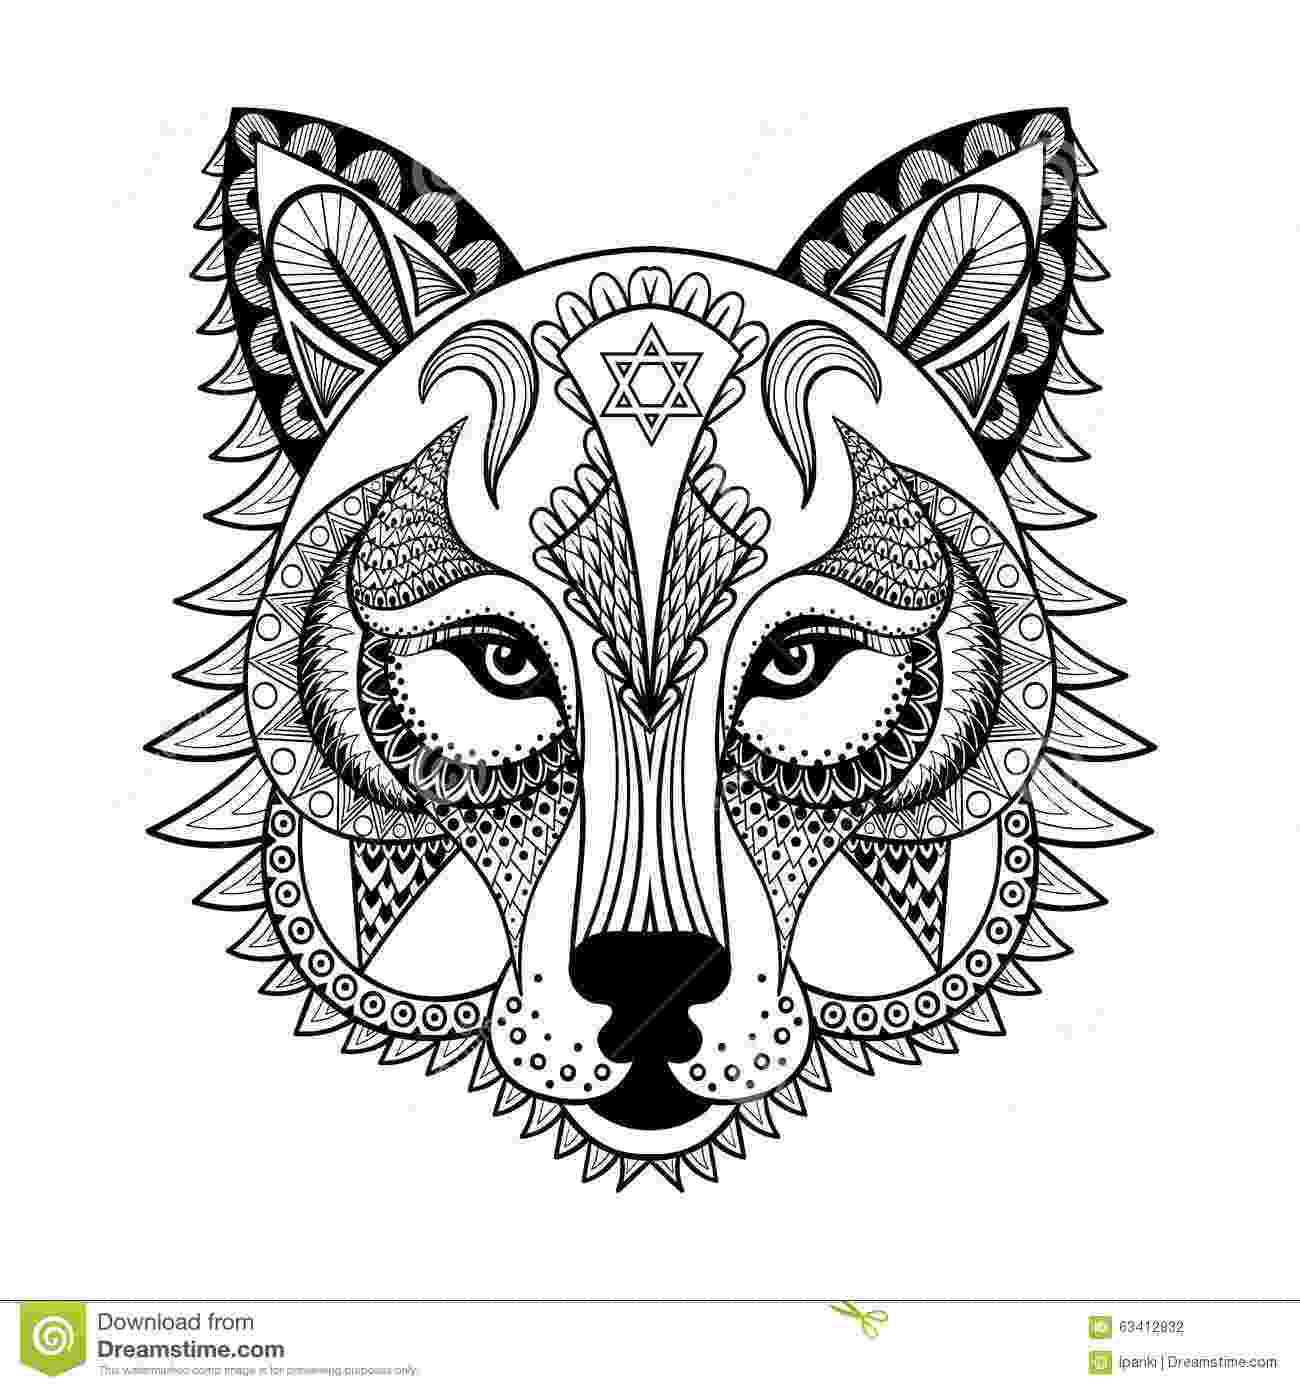 anti stress coloring book animals anti stress coloring pages for adults free printable anti book anti coloring animals stress